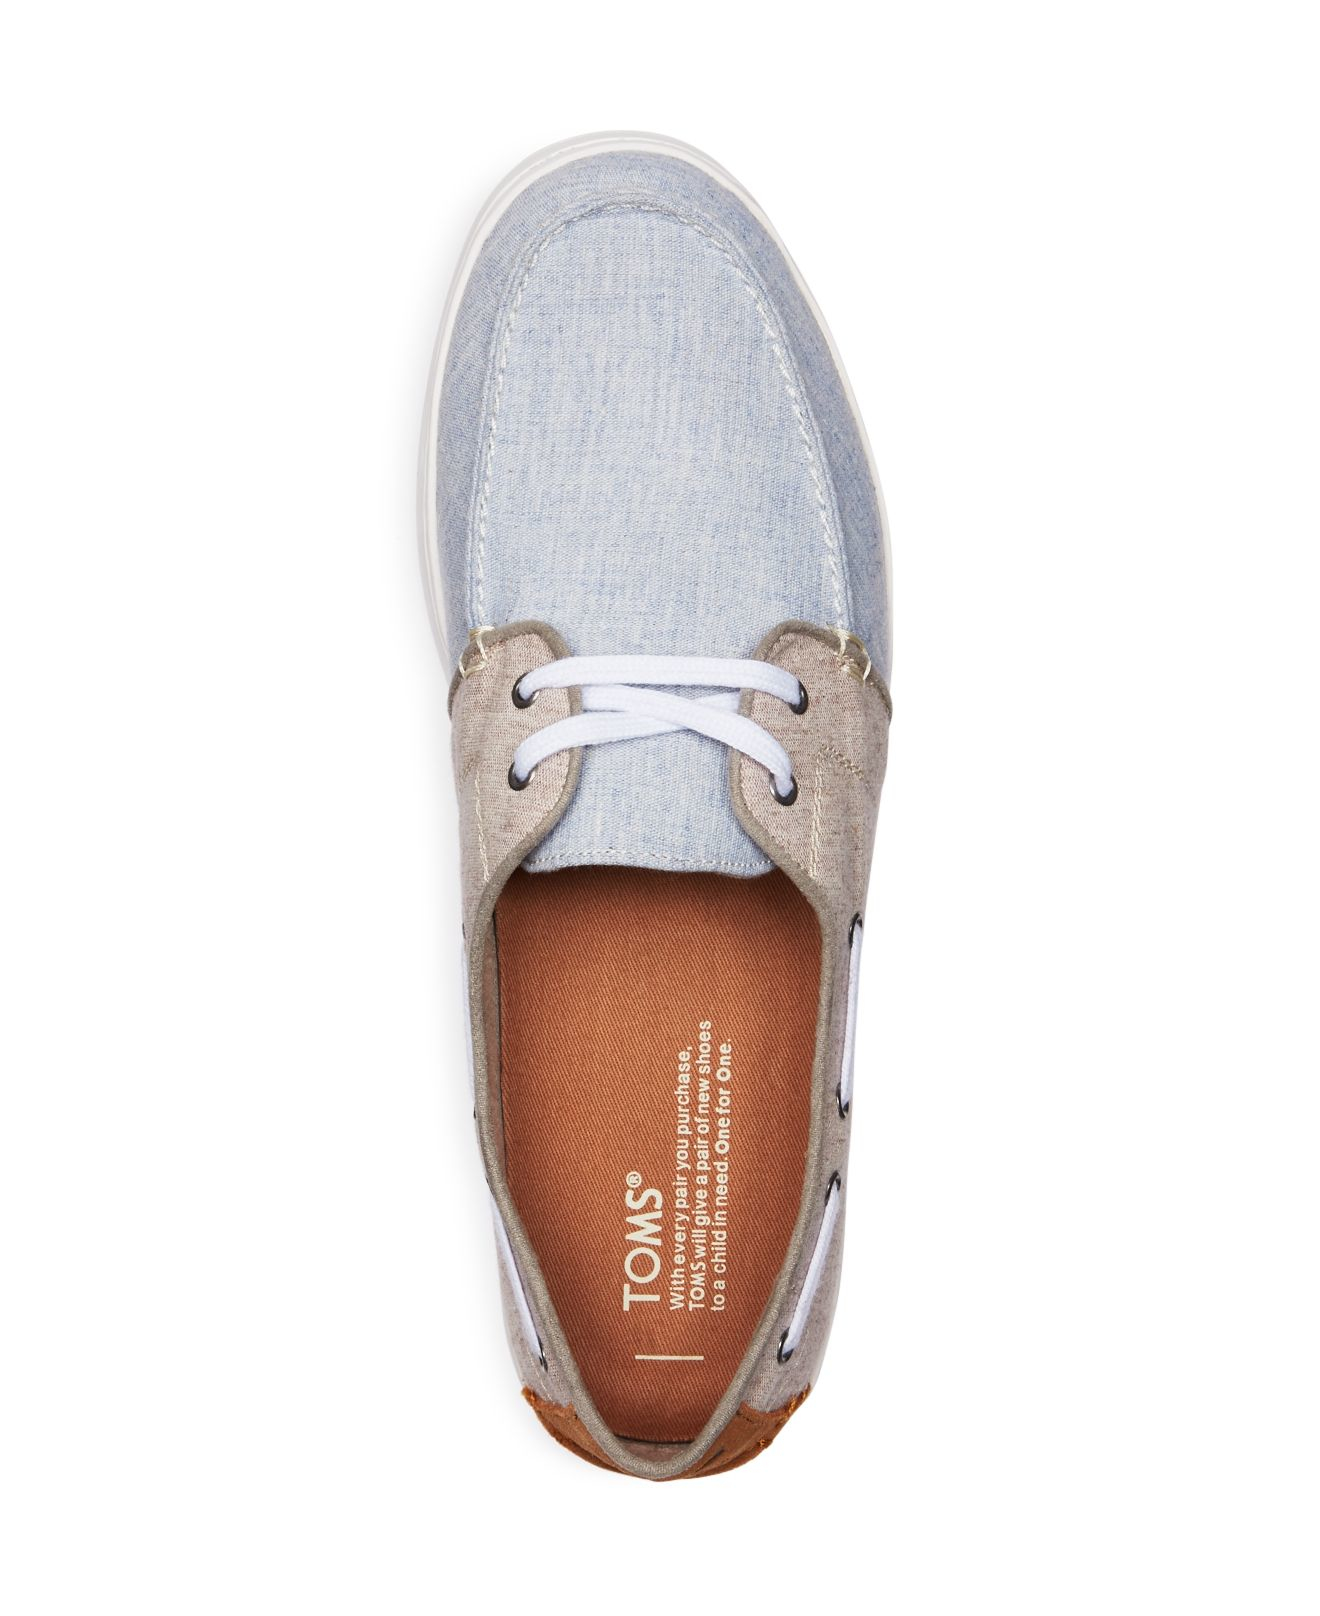 46652a5cf383 ... TOMS Culver Lace Up Boat Shoes in Gray for Men Lyst